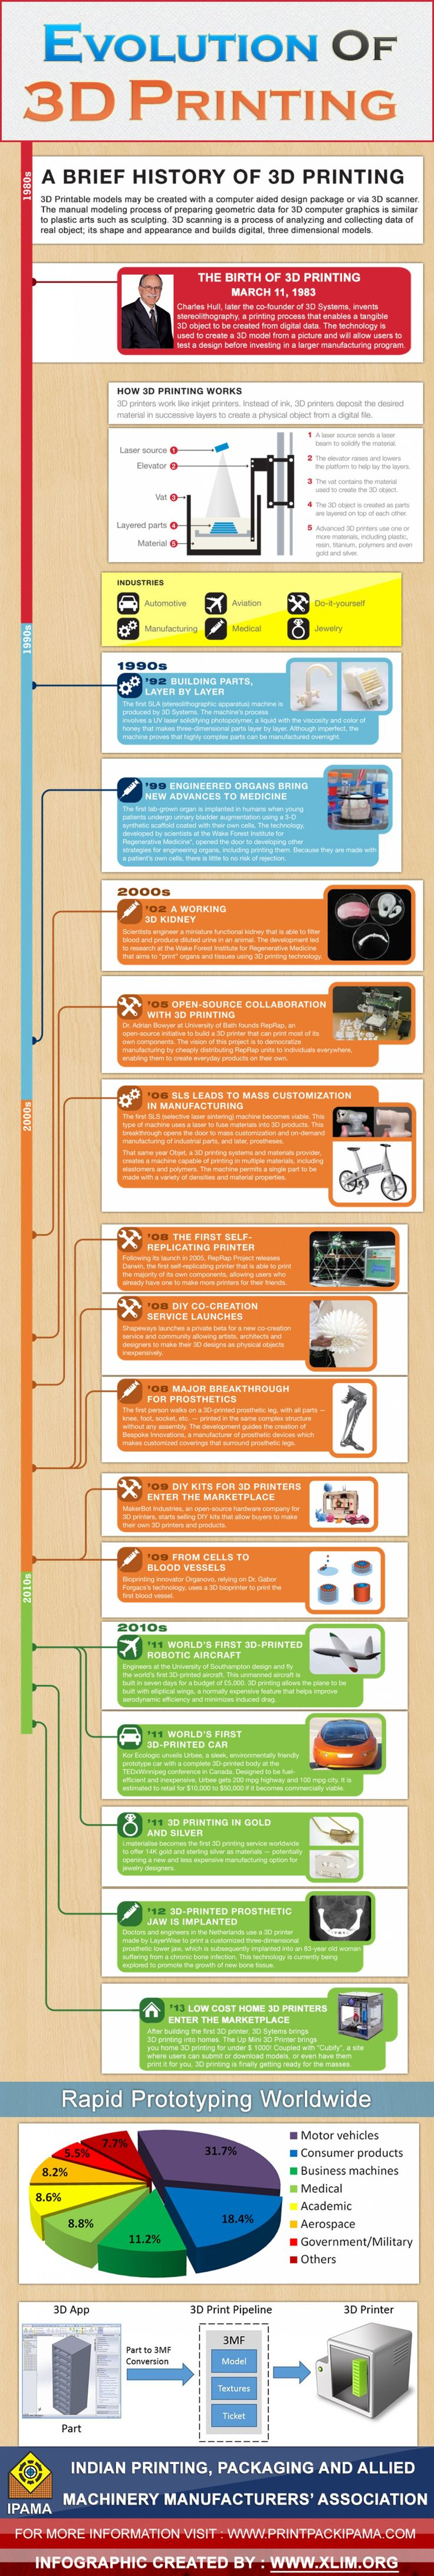 Evolution Of 3D Printing Infographic Maybe something for 3D Printer Chat?